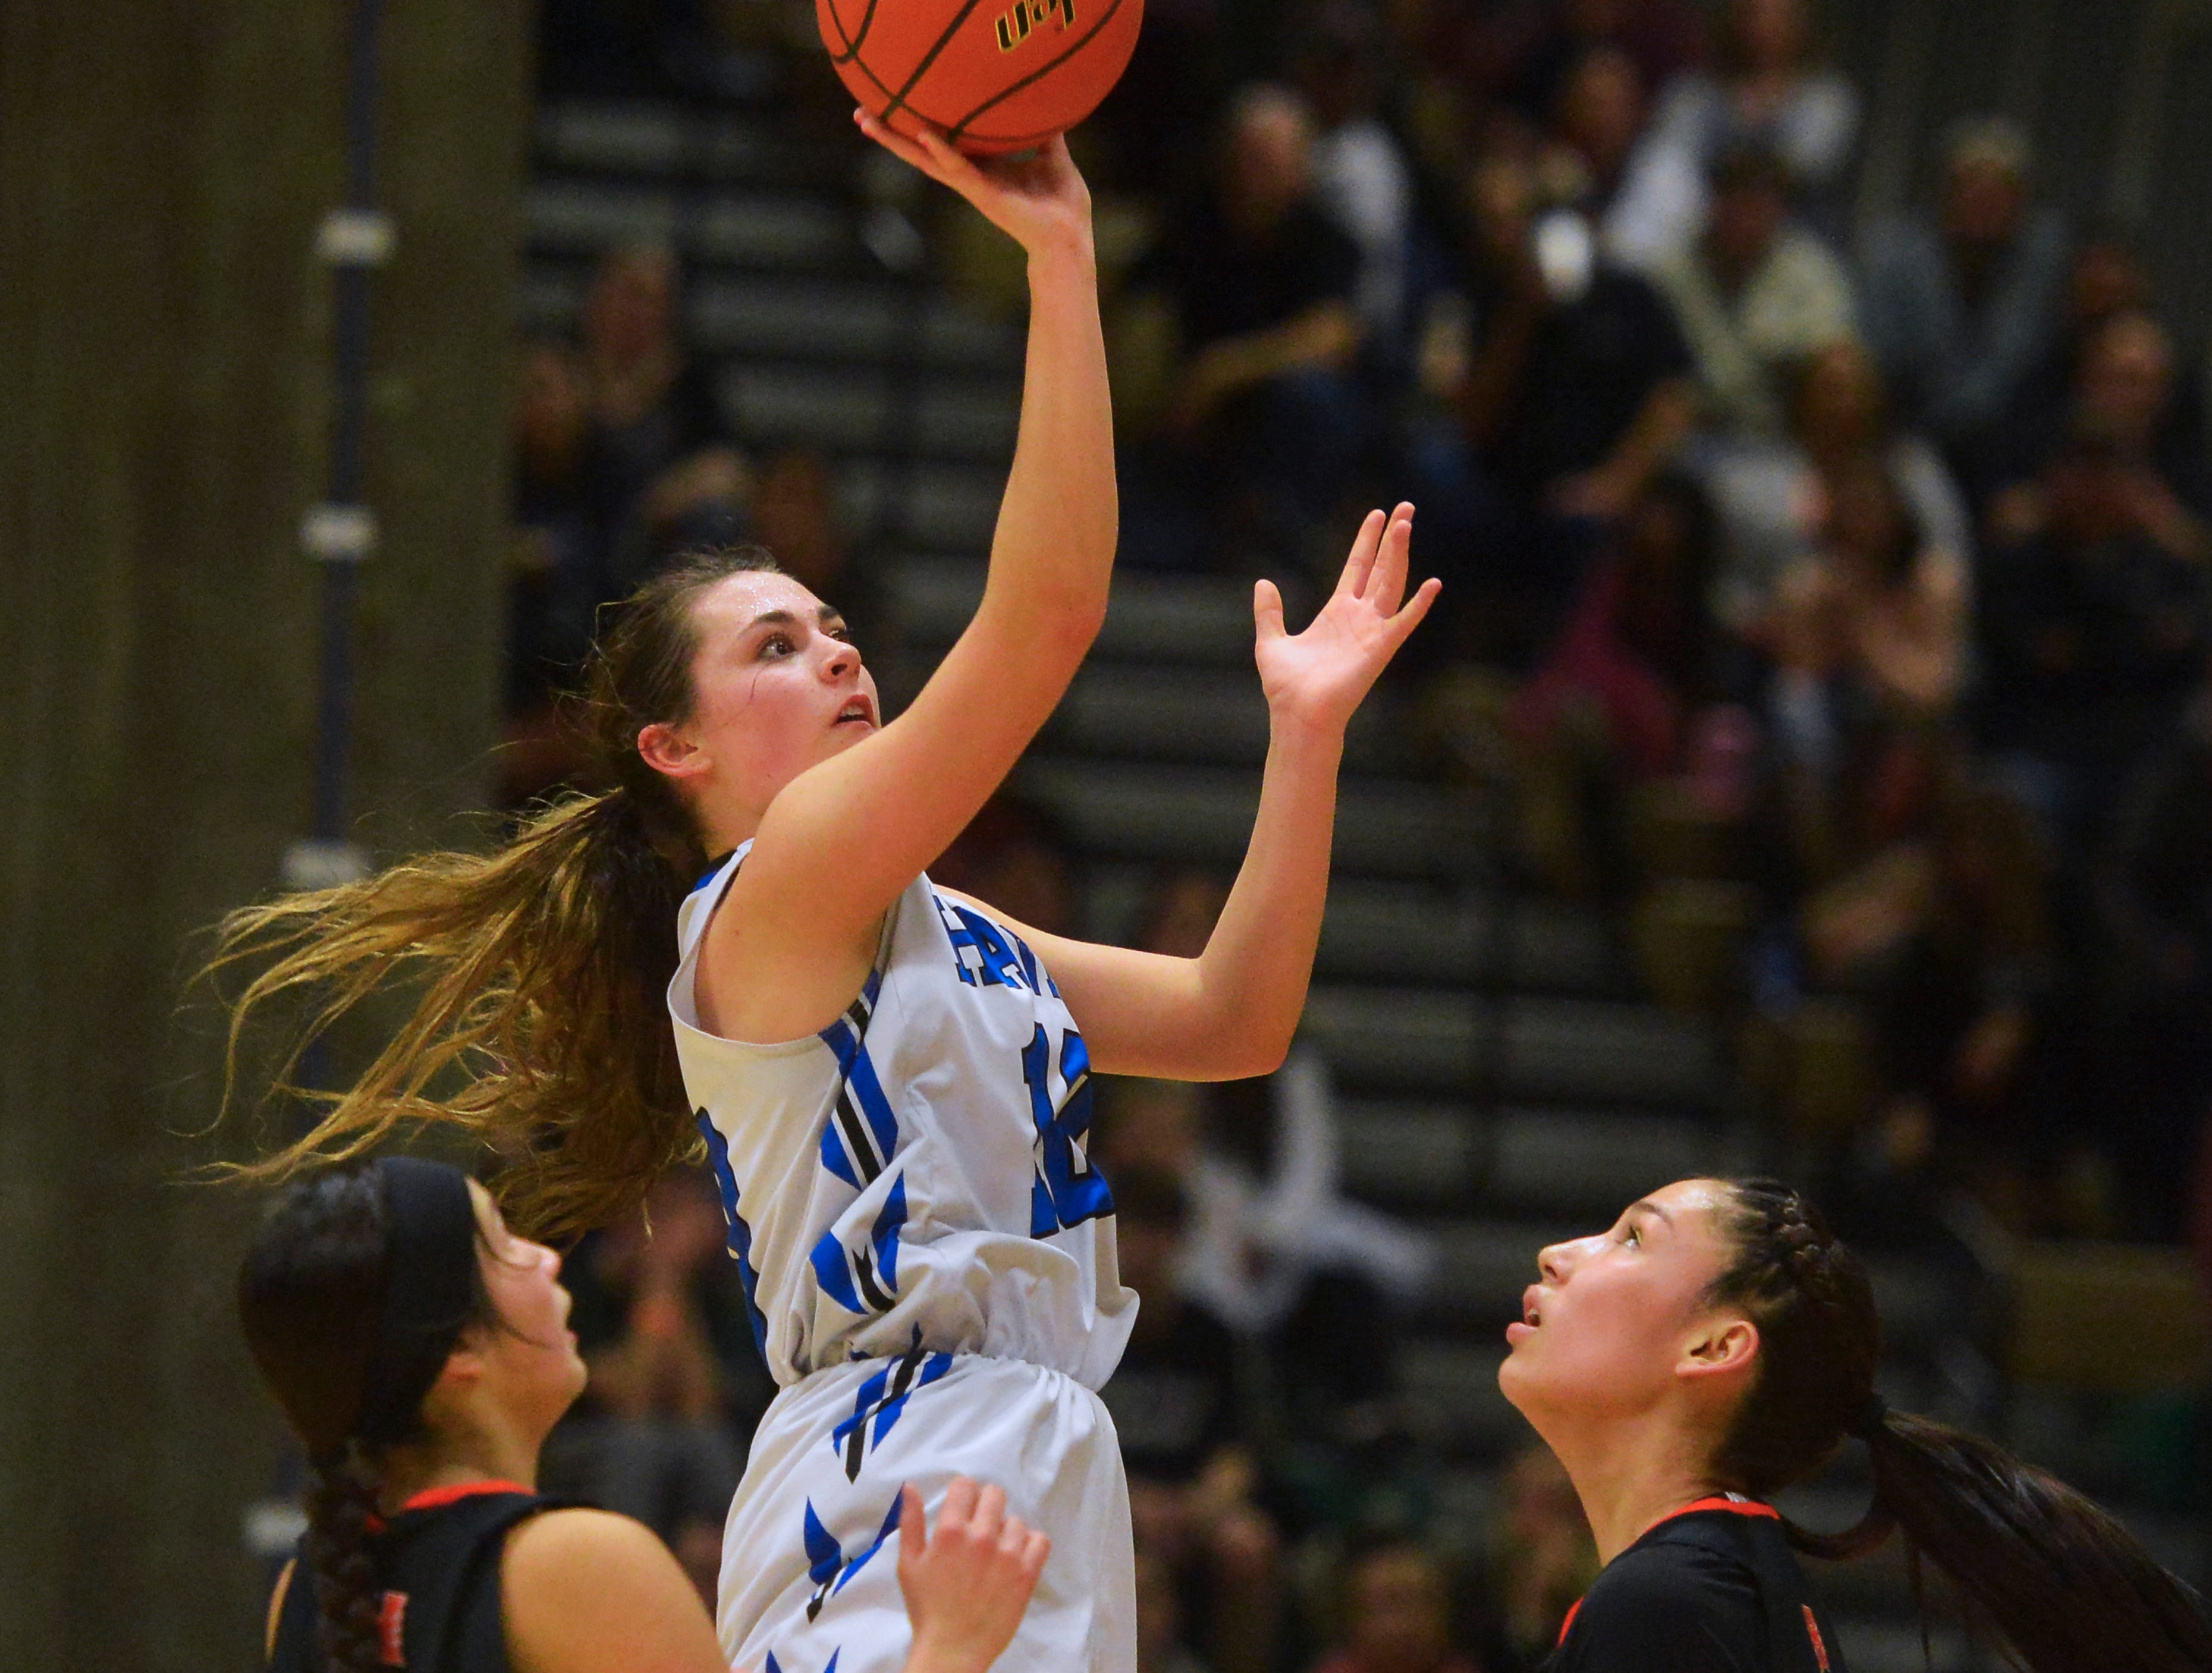 Havre's Kyndall Keller takes a jump shot between Hardin's Ivery Fritzler and Sossity Spotted Wolf during the title game of the State Class A Basketball Tournament in the Four Seasons Arena, Saturday.